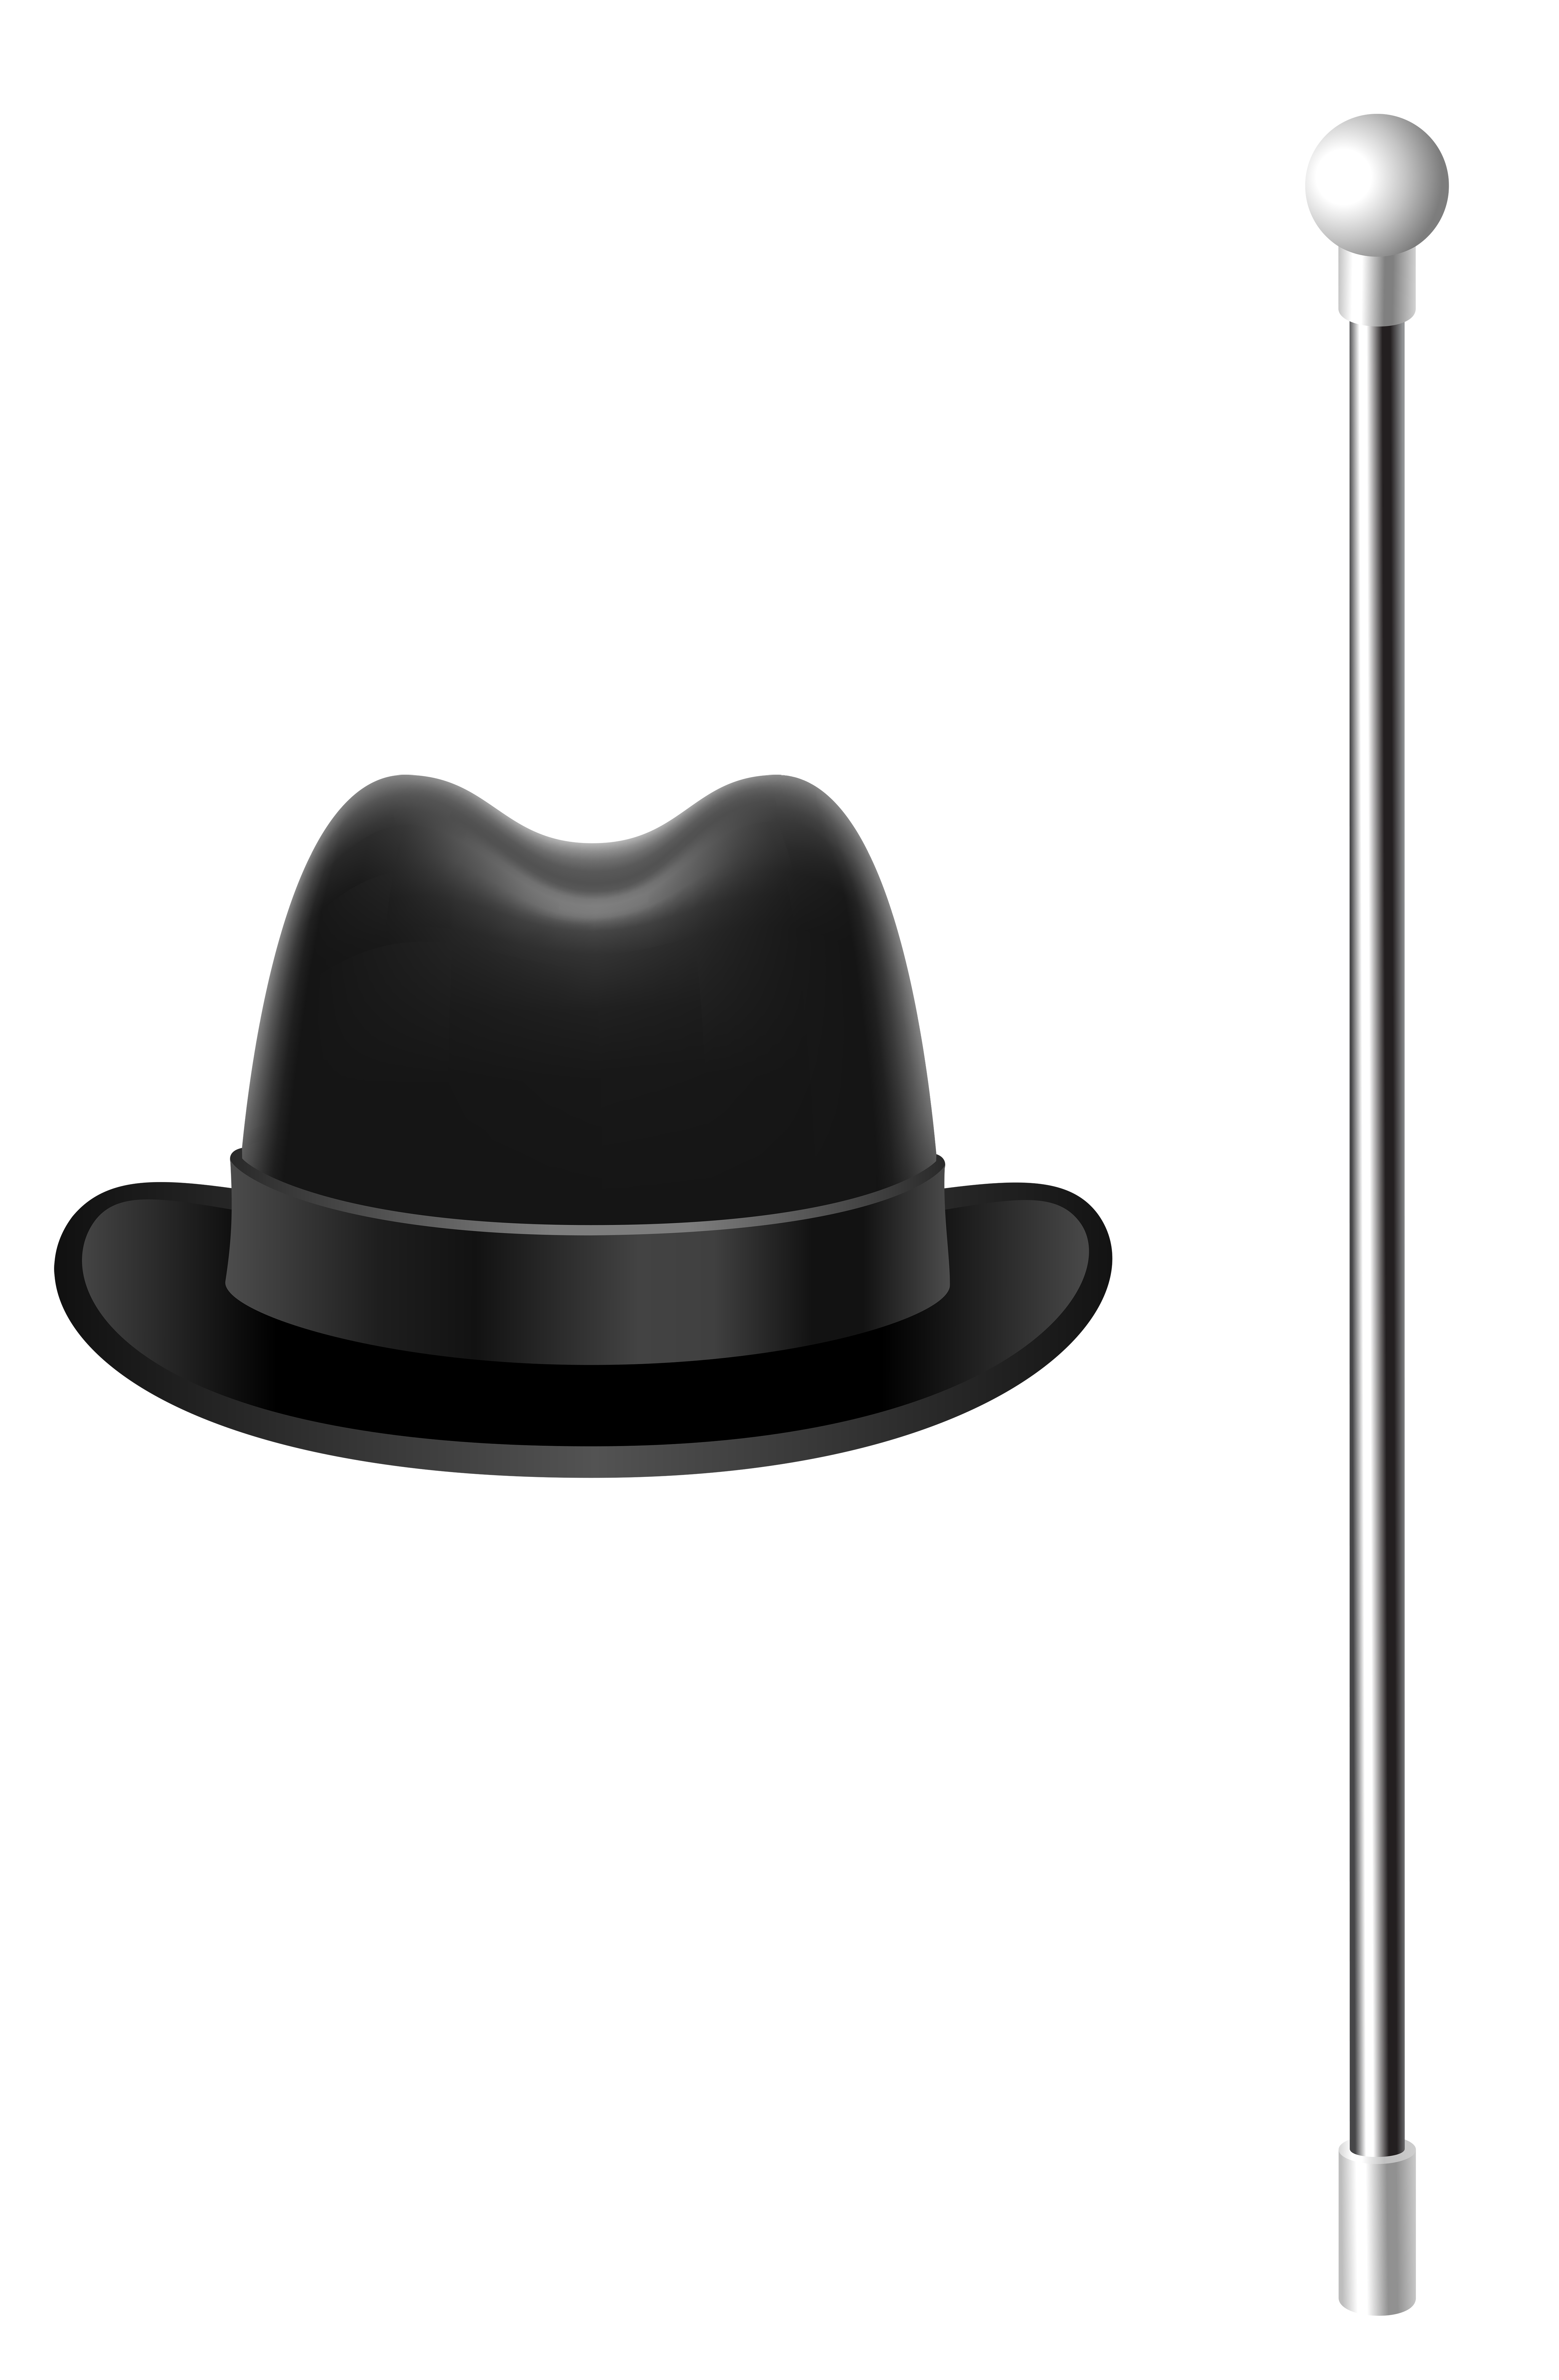 Hat with cane png. Fedora clipart picture black and white library